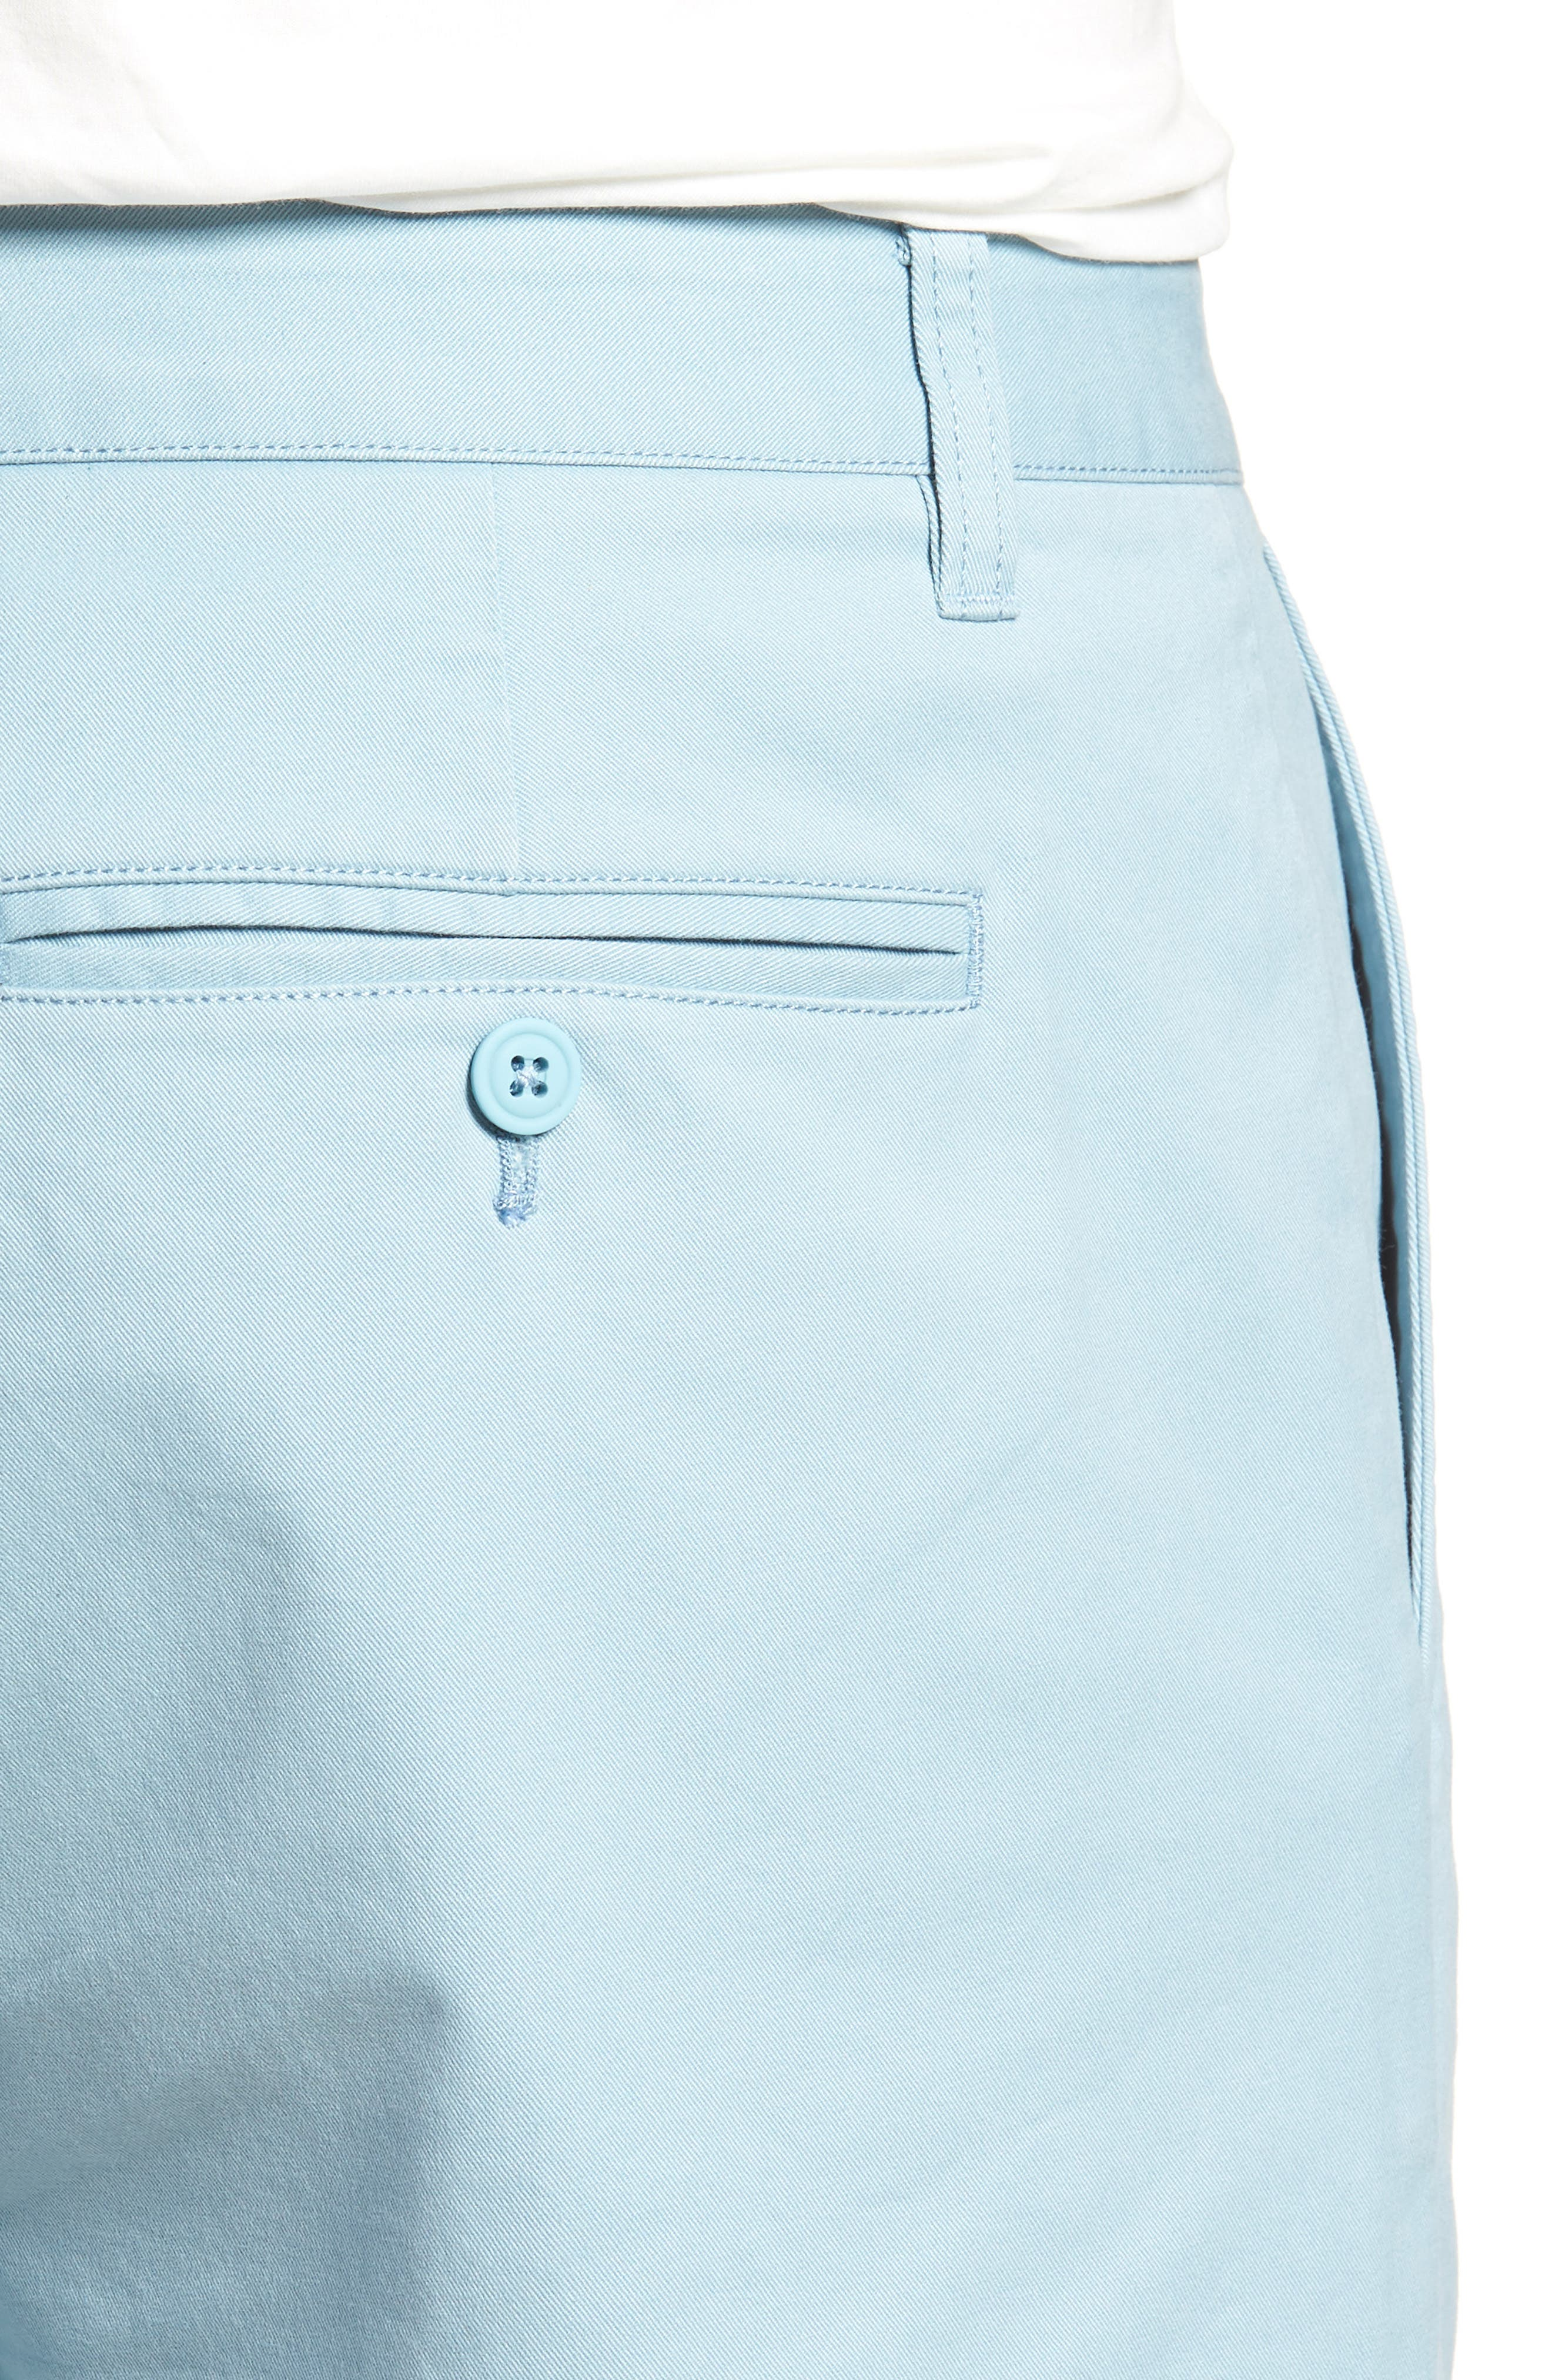 Stretch Chino 7-Inch Shorts,                             Alternate thumbnail 45, color,